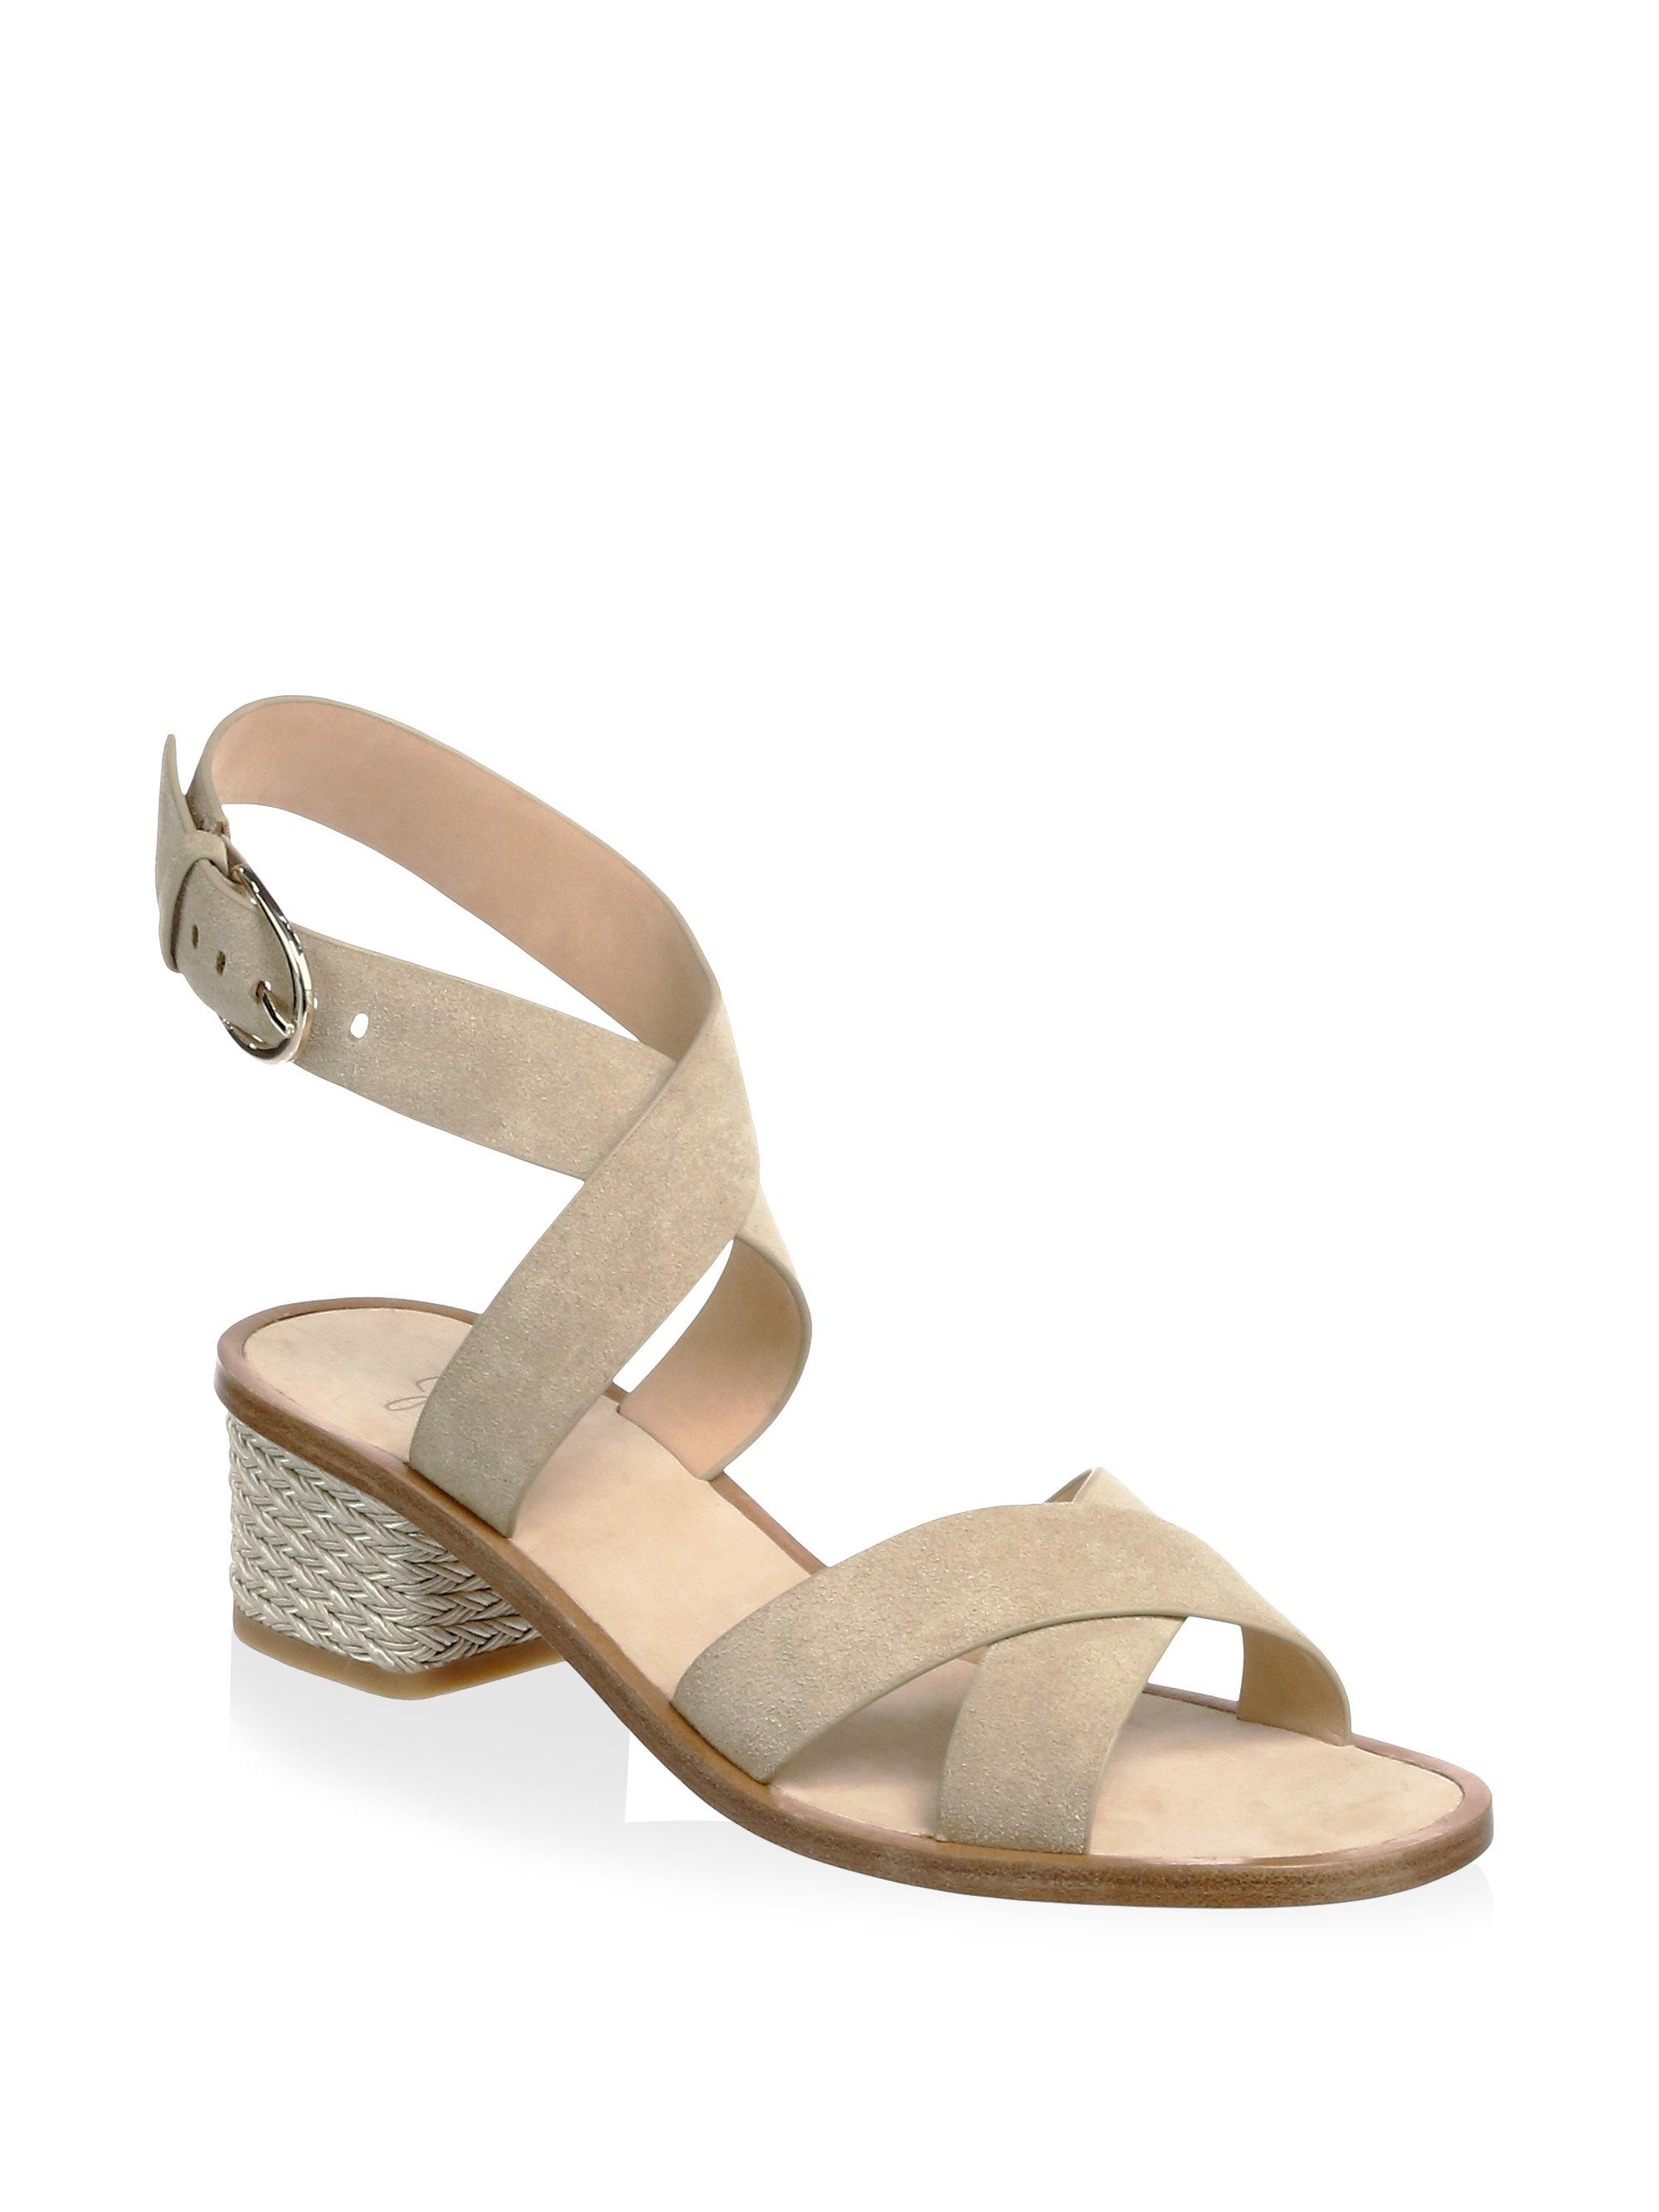 Joie Rana Leather Ankle Strap Sandals HyqaZEa